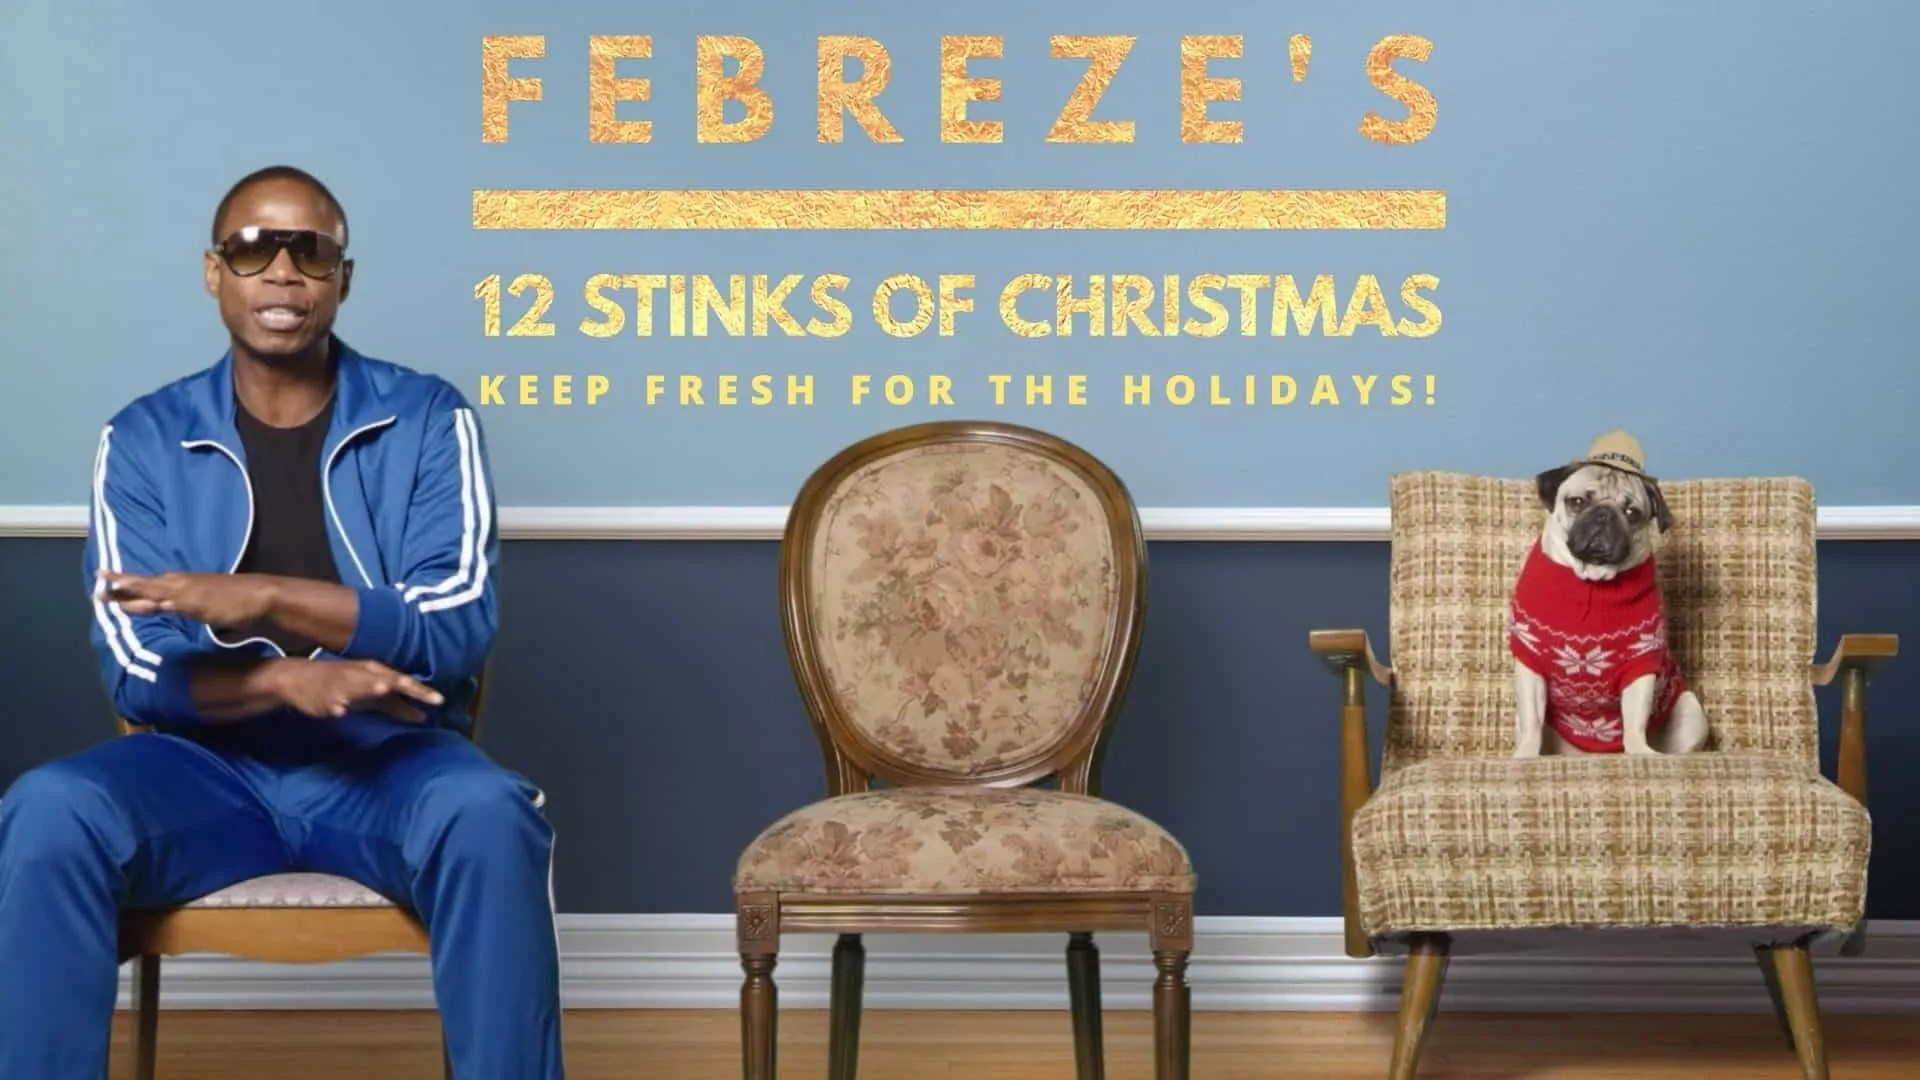 Febreze's 12 Stinks of Christmas — Keep Fresh for the Holidays! (Featured Image)